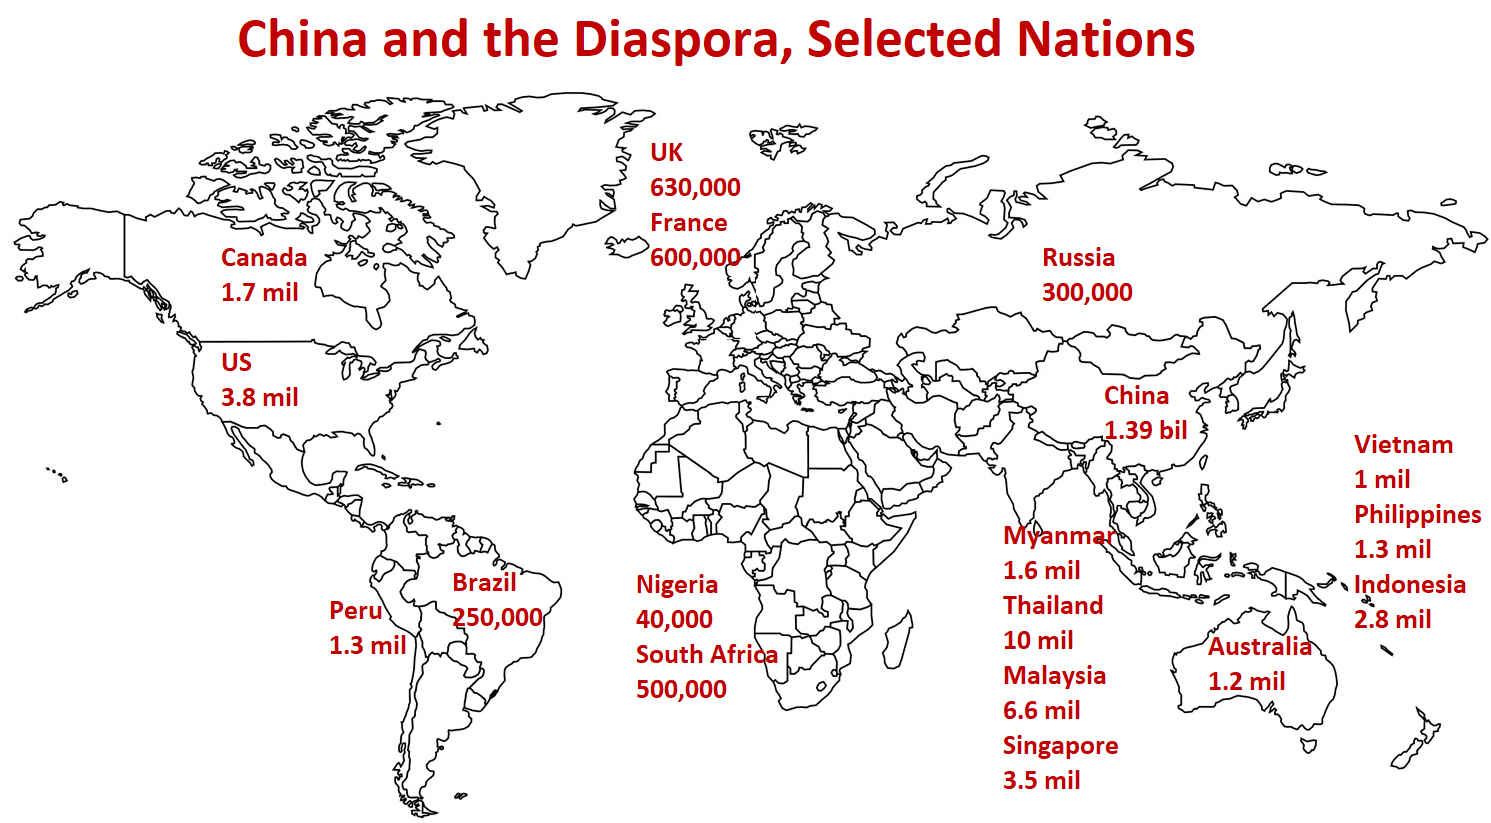 China and Its Diaspora on World Map, population: China  1.39 bil   UK 630,000  France 600,000  Italy  330,000  Russia 300,000  Nigeria 	 40,000 South Africa  500,000   Myanmar 1.6 mil Thailand 10 mil Malaysia  6.6 mil Singapore  3.5 mil   Vietnam  1 mil Indonesia  2.8 mil Philippines 1.3 mil  Canada 1.7 mil  US  3.8 mil   Peru  1.3 mil  Brazil 250,000  Australia 1.2 mil